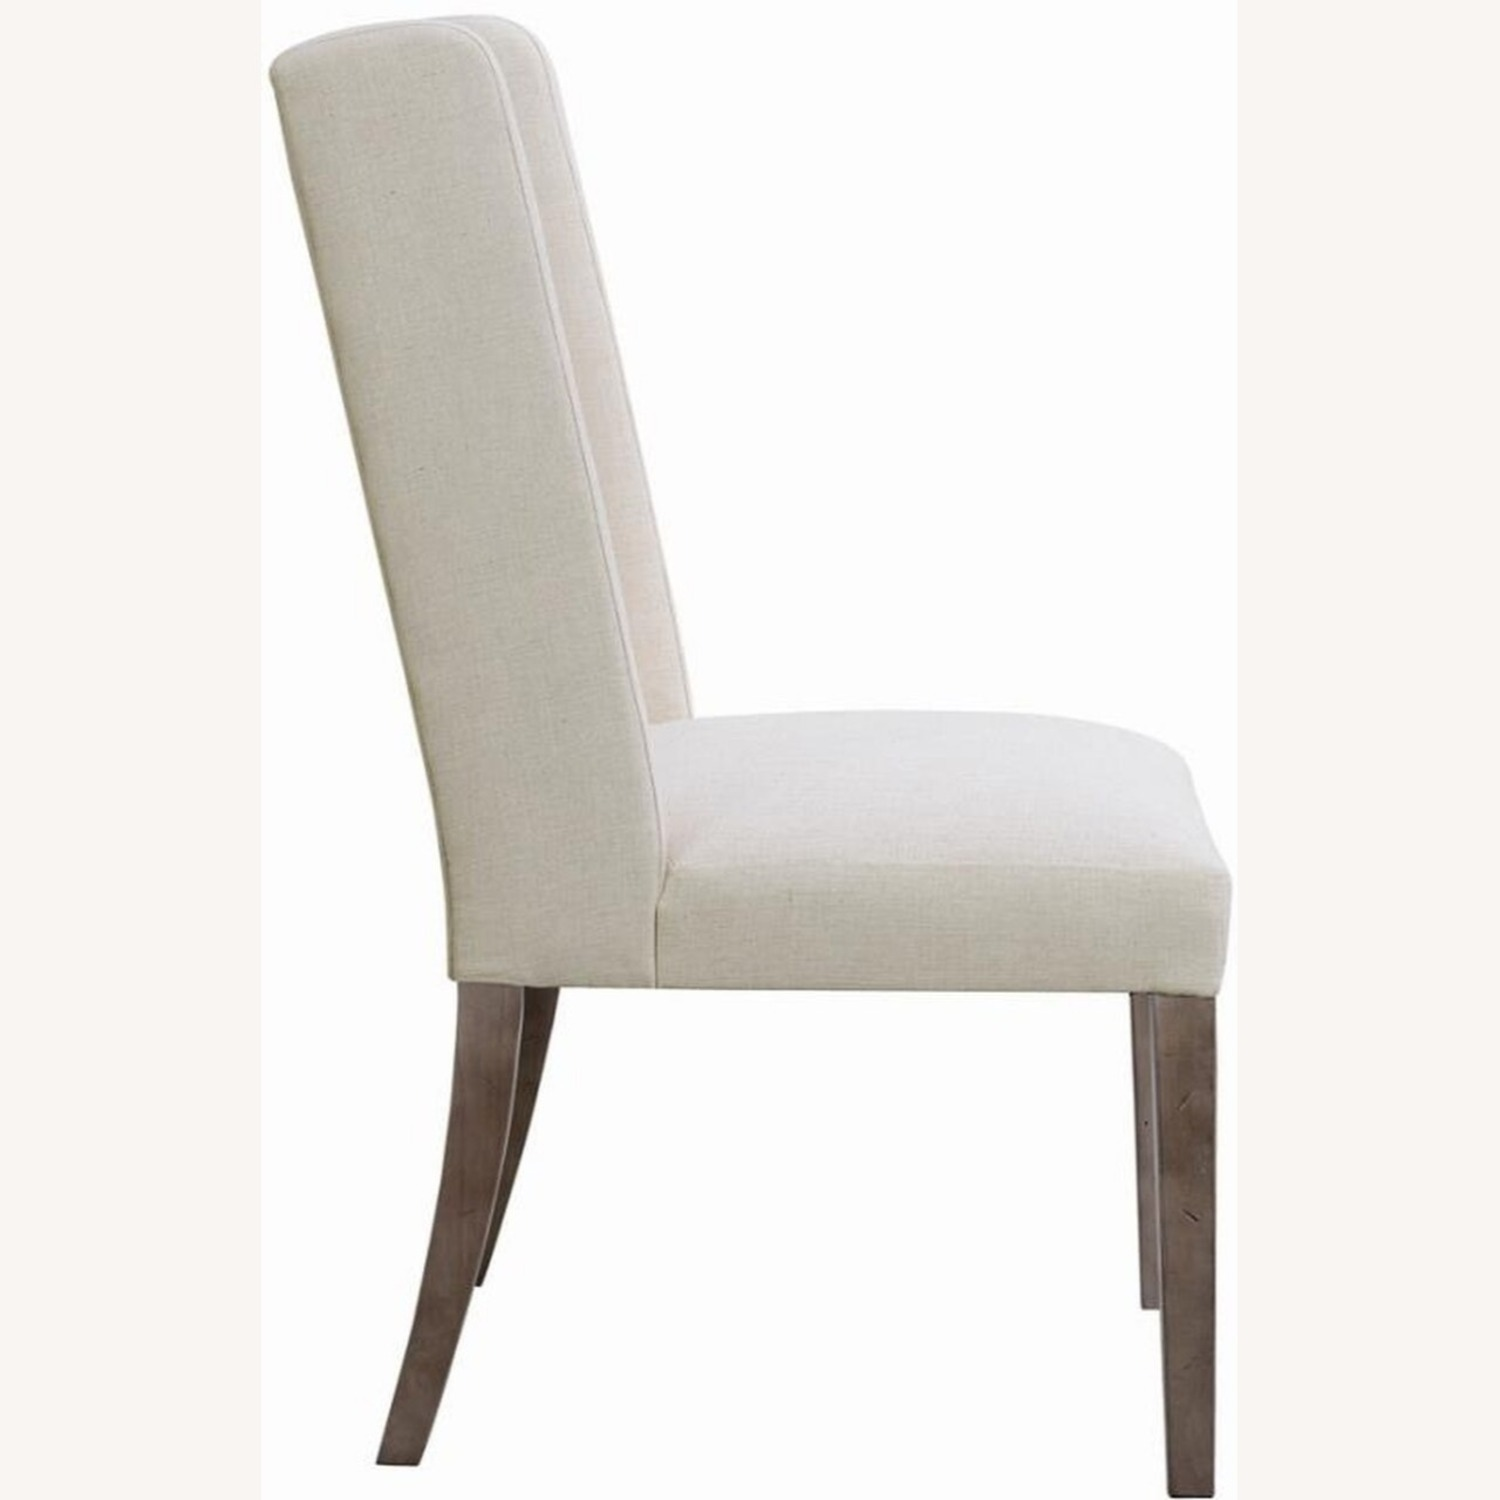 Transitional Side Chair In Beige Fabric - image-2